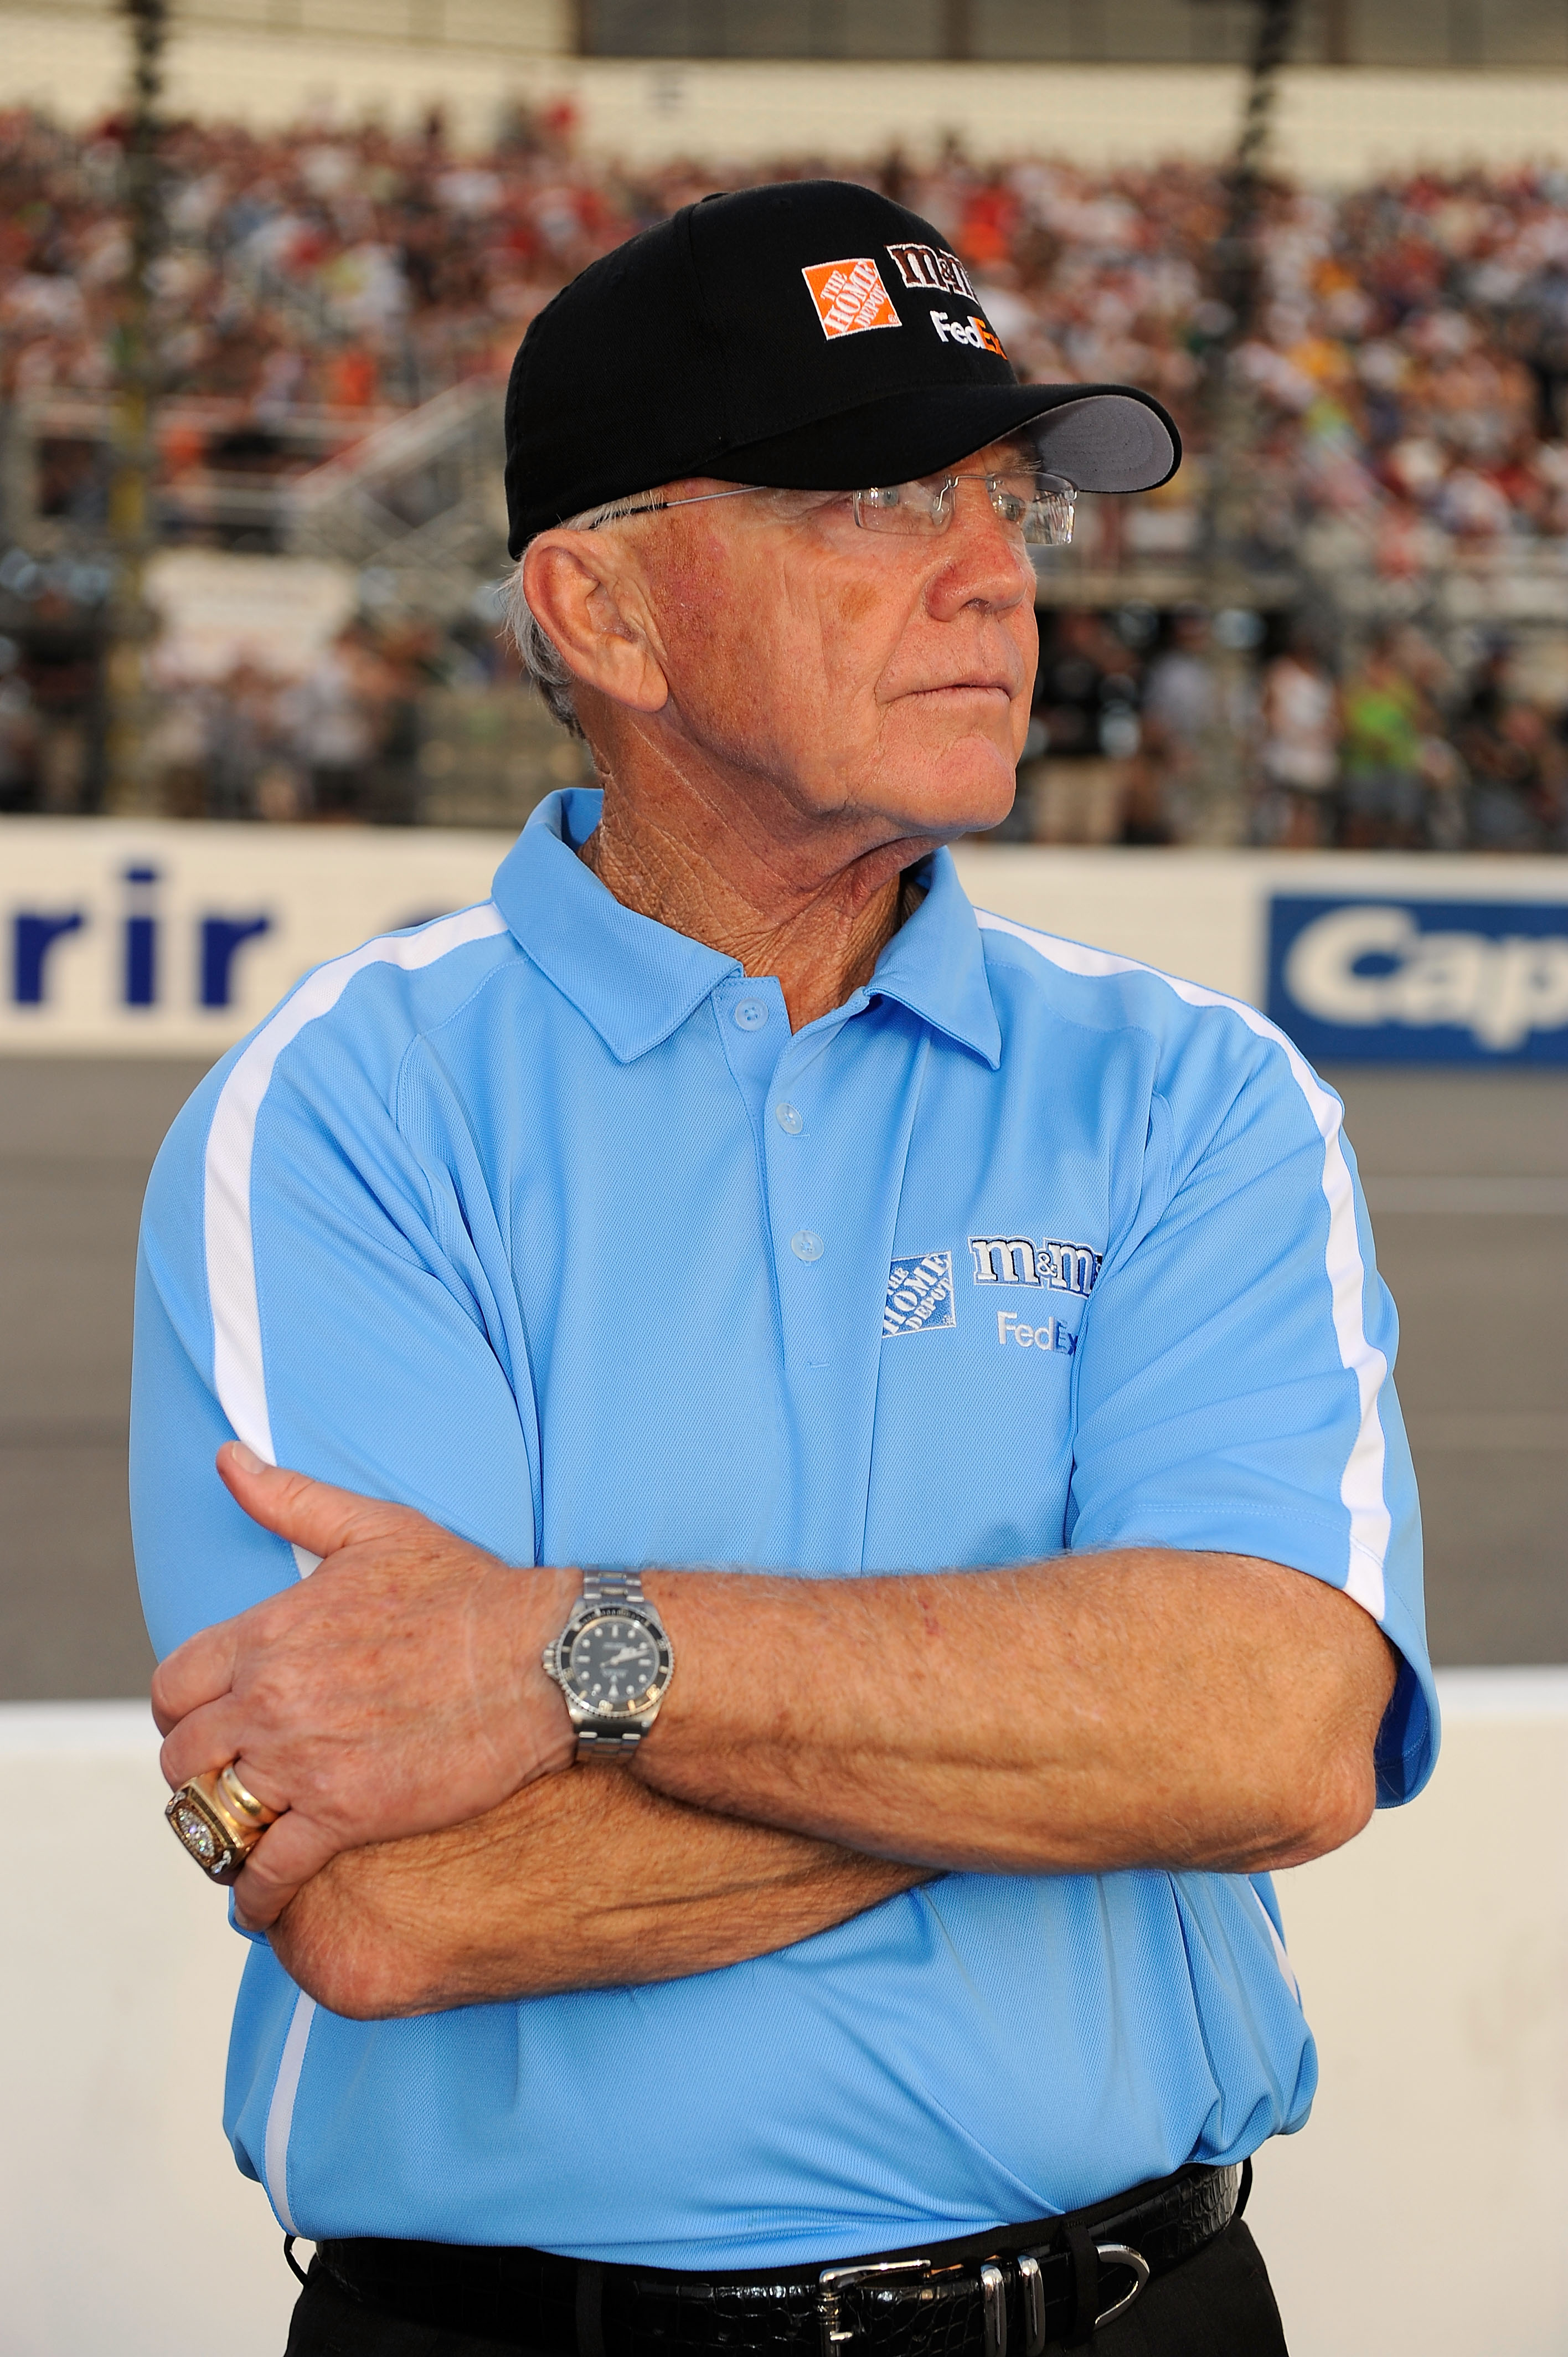 RICHMOND, VA - MAY 01:  Team owner Joe Gibbs looks on from the grid prior to the start of the NASCAR Sprint Cup Series Crown Royal Presents the Heath Calhoun 400 at Richmond International Raceway on May 1, 2010, 2010 in Richmond, Virginia.  (Photo by Rust